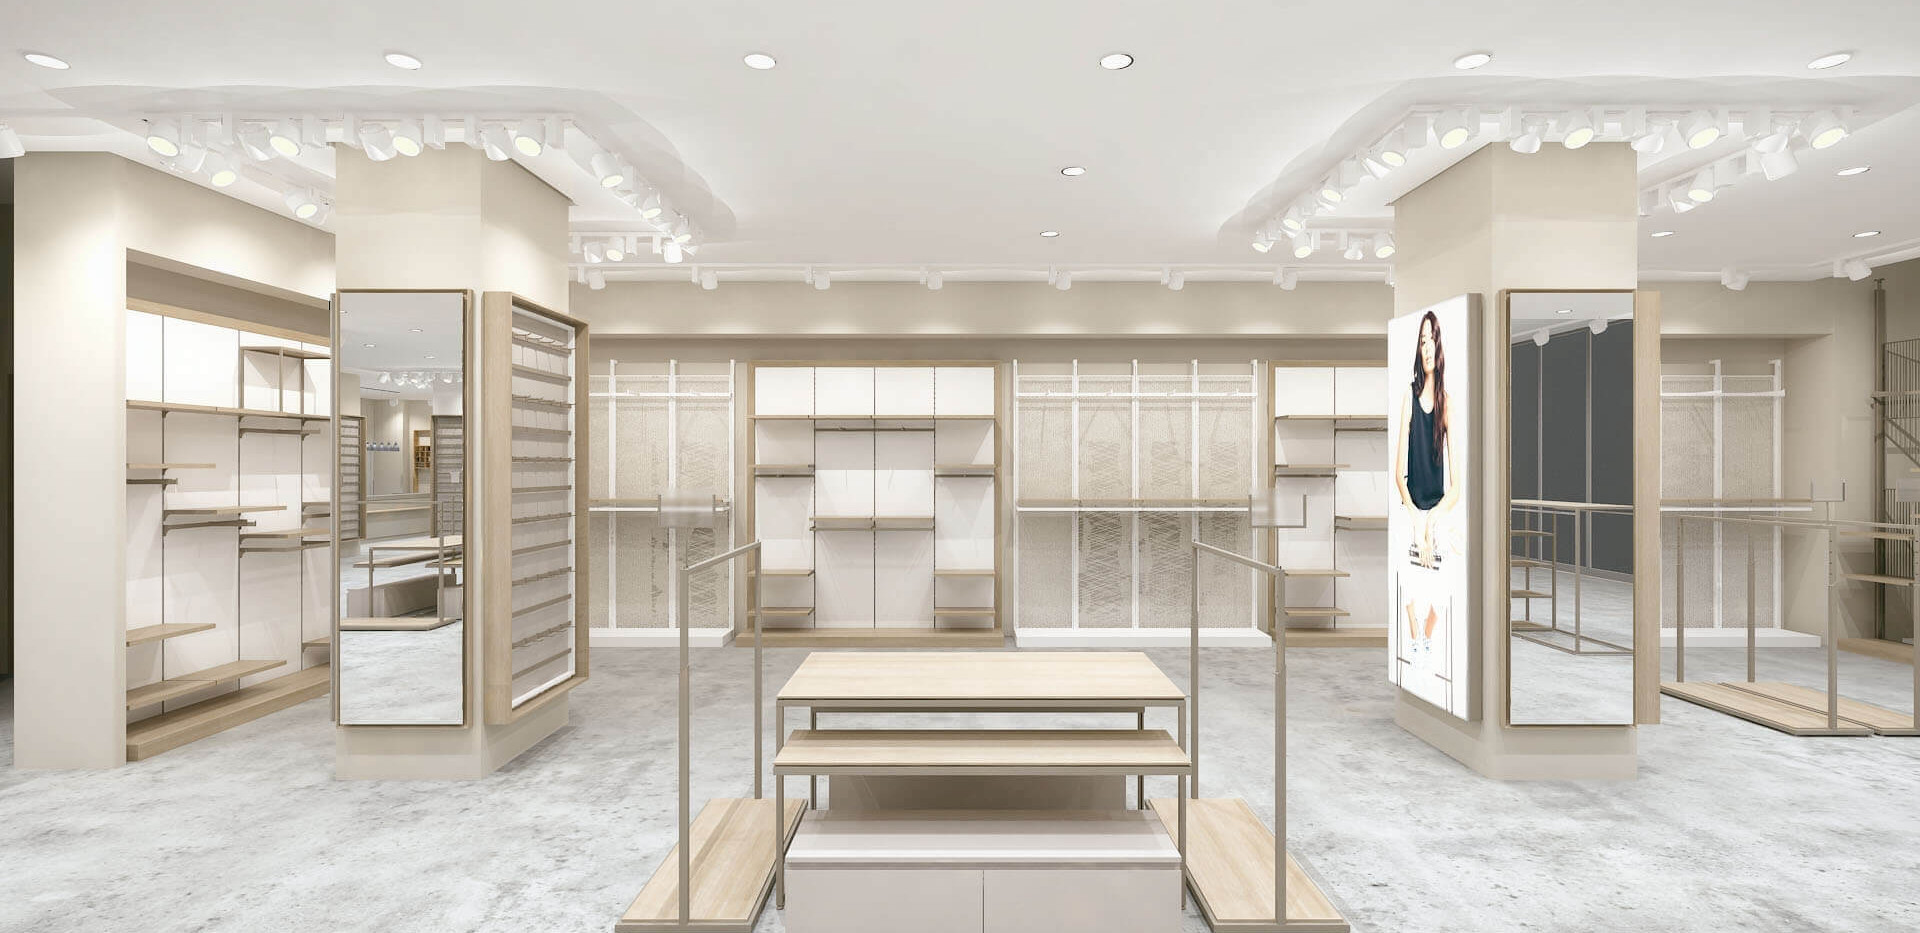 Cinici_-_Fashion_Store_Shop_Design-2.jpg